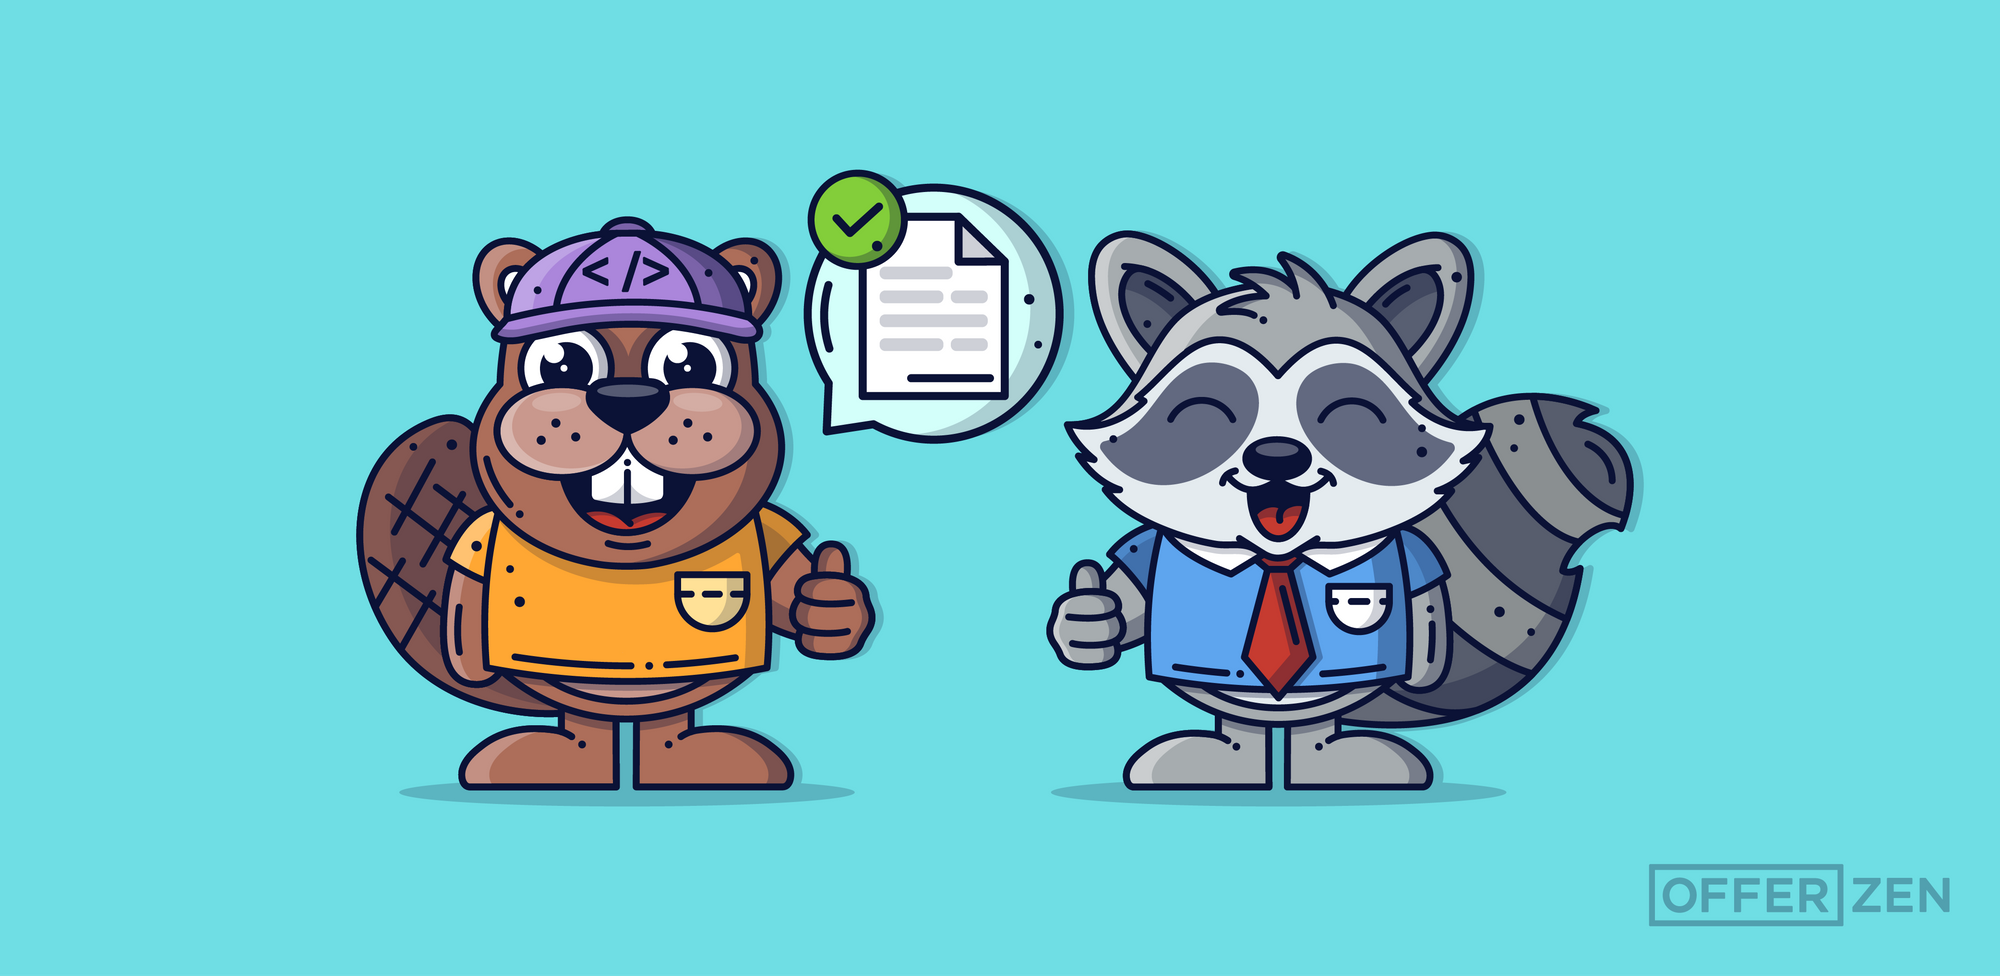 Neil_Raccoon_Beaver_4-Hiring-Strategies-Luno-Uses-to-Set-Realistic-Candidate-Expectations_Inner-Article-Image